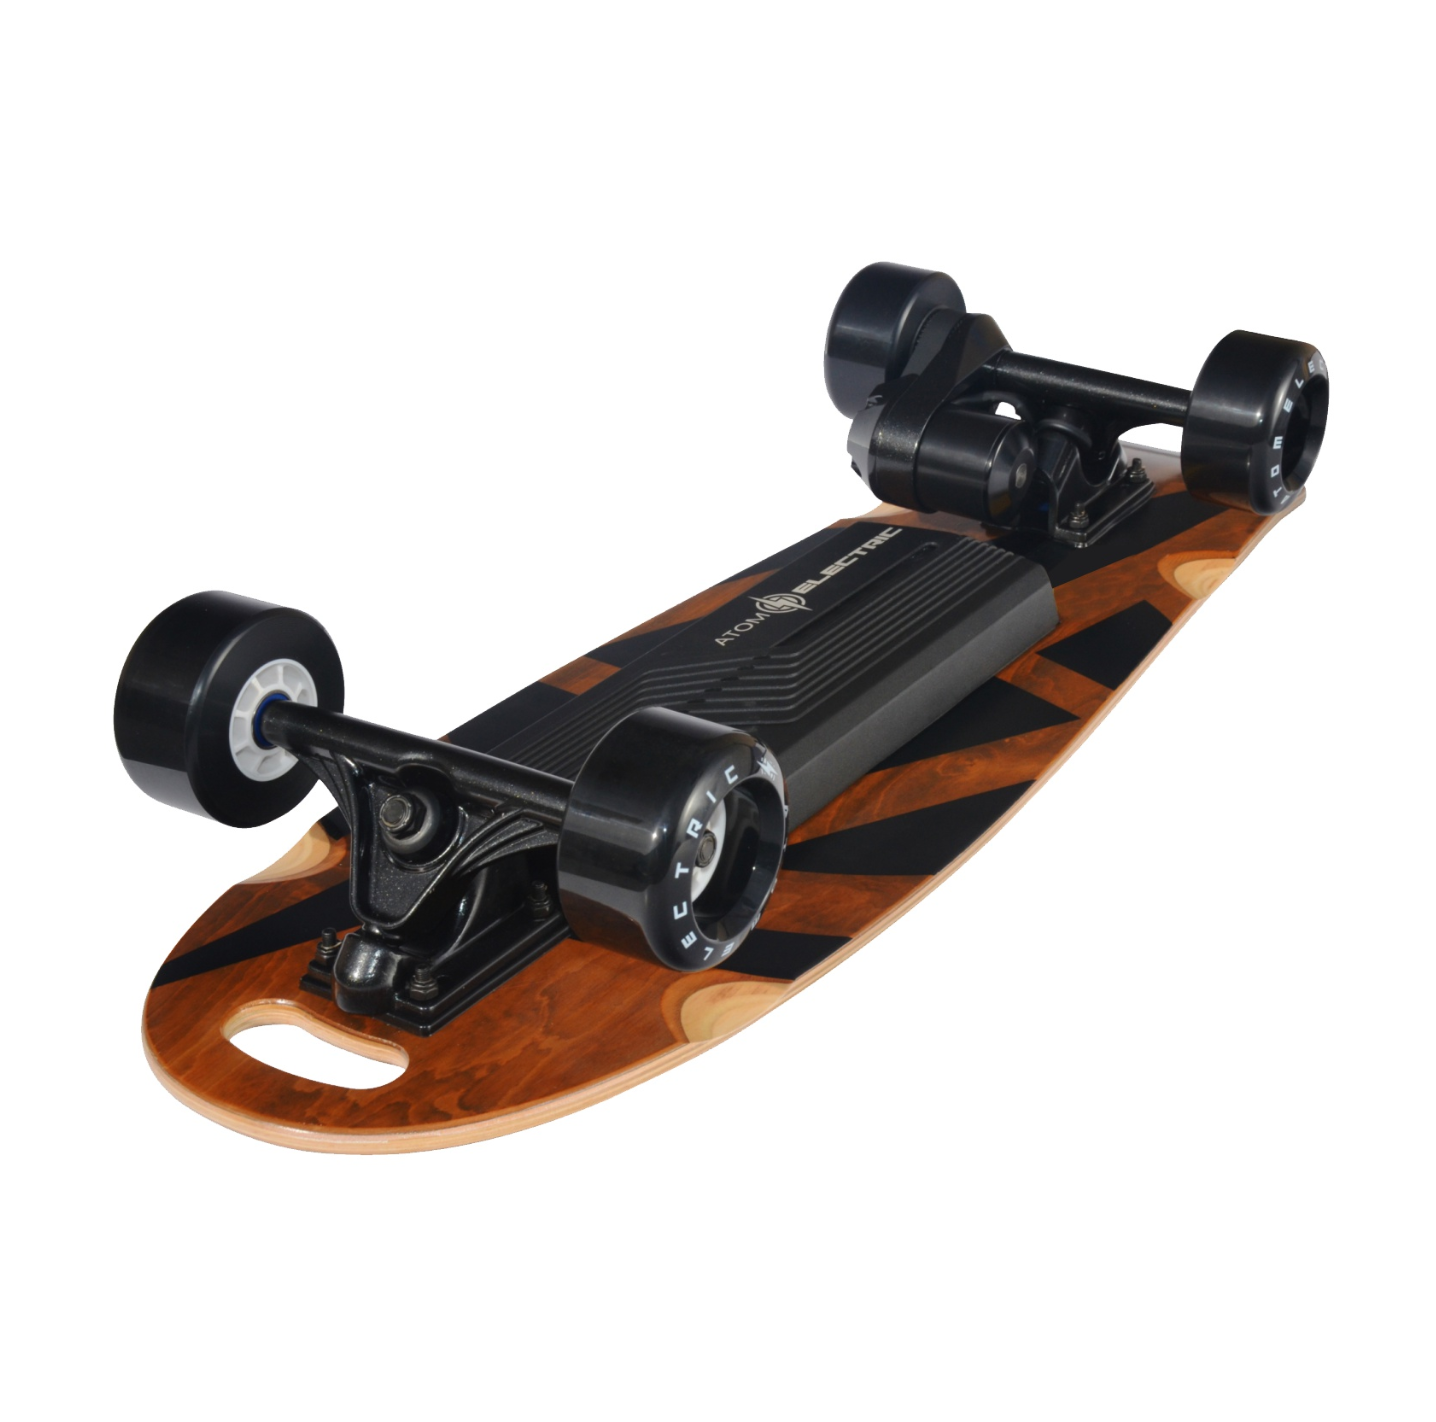 Image of Atom Electric B10 Skateboard - 90Wh Lithium Battery - 1000W Motor